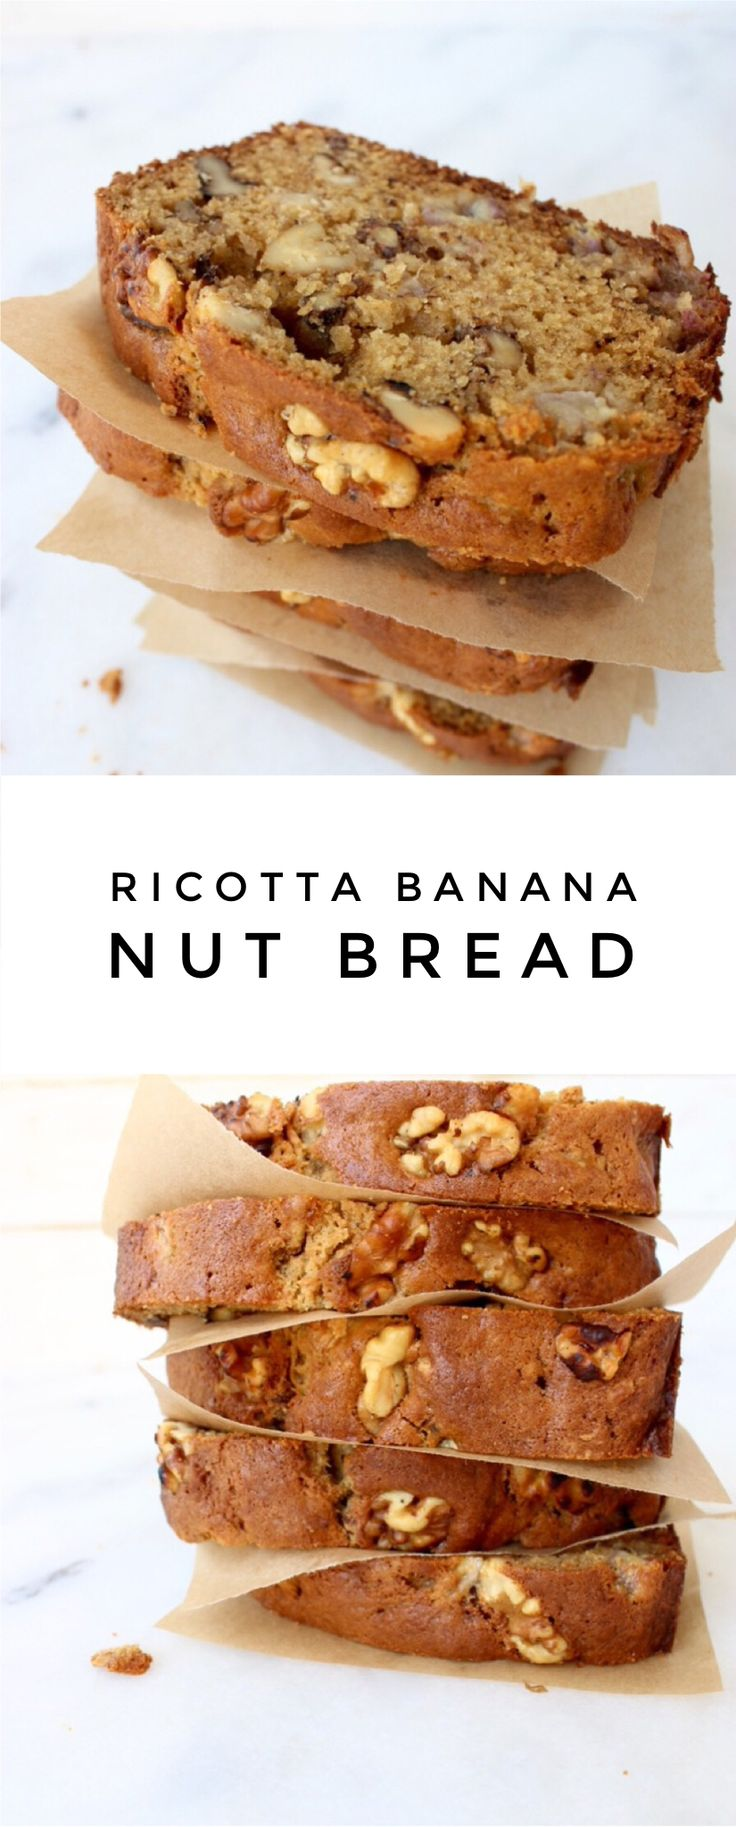 Ricotta Banana Nut Bread Recipe | CiaoFlorentina.com